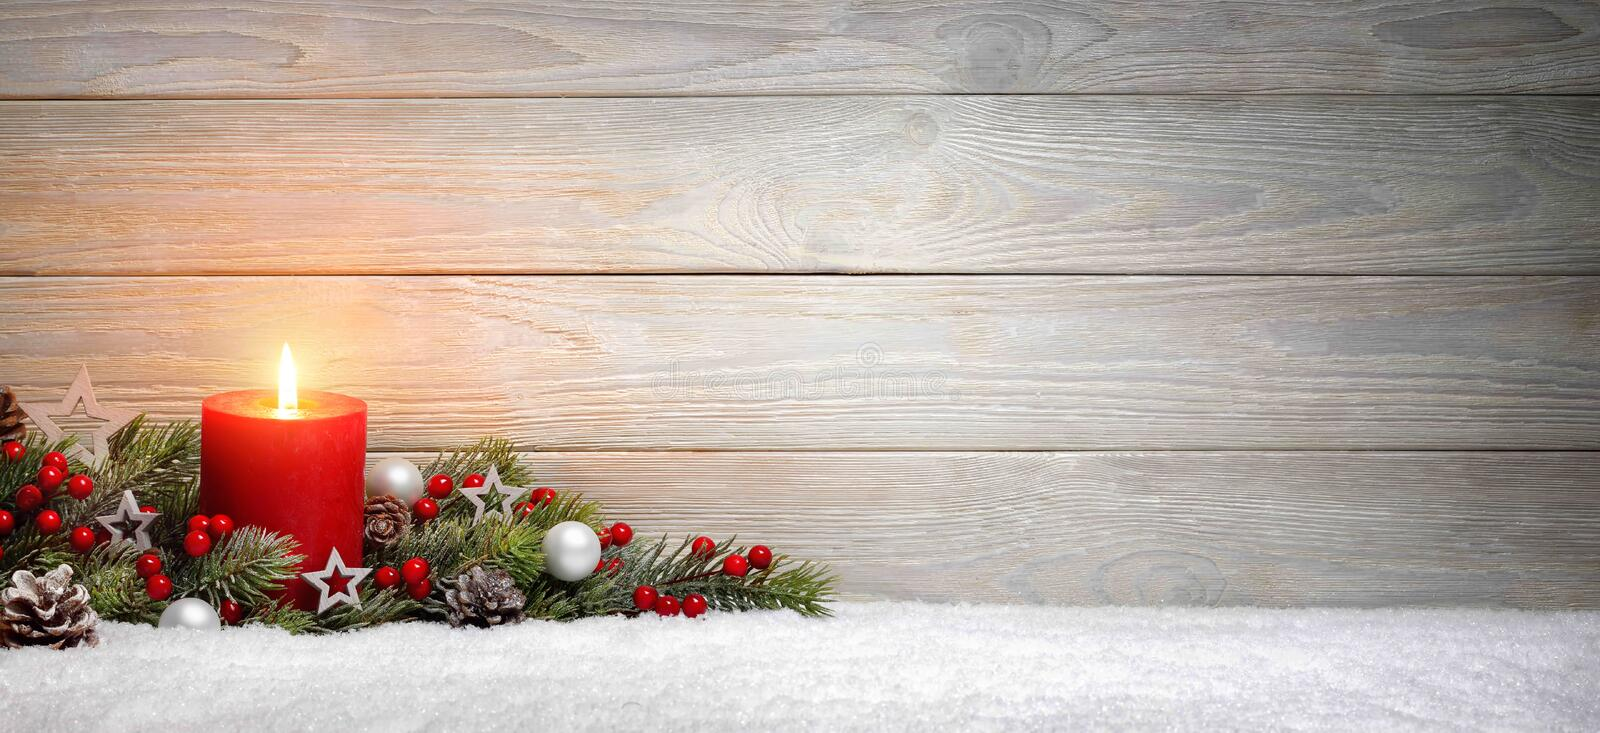 Download Christmas Or Advent Wood Background With A Candle Stock Photo - Image of candlelight, burning: 80851428